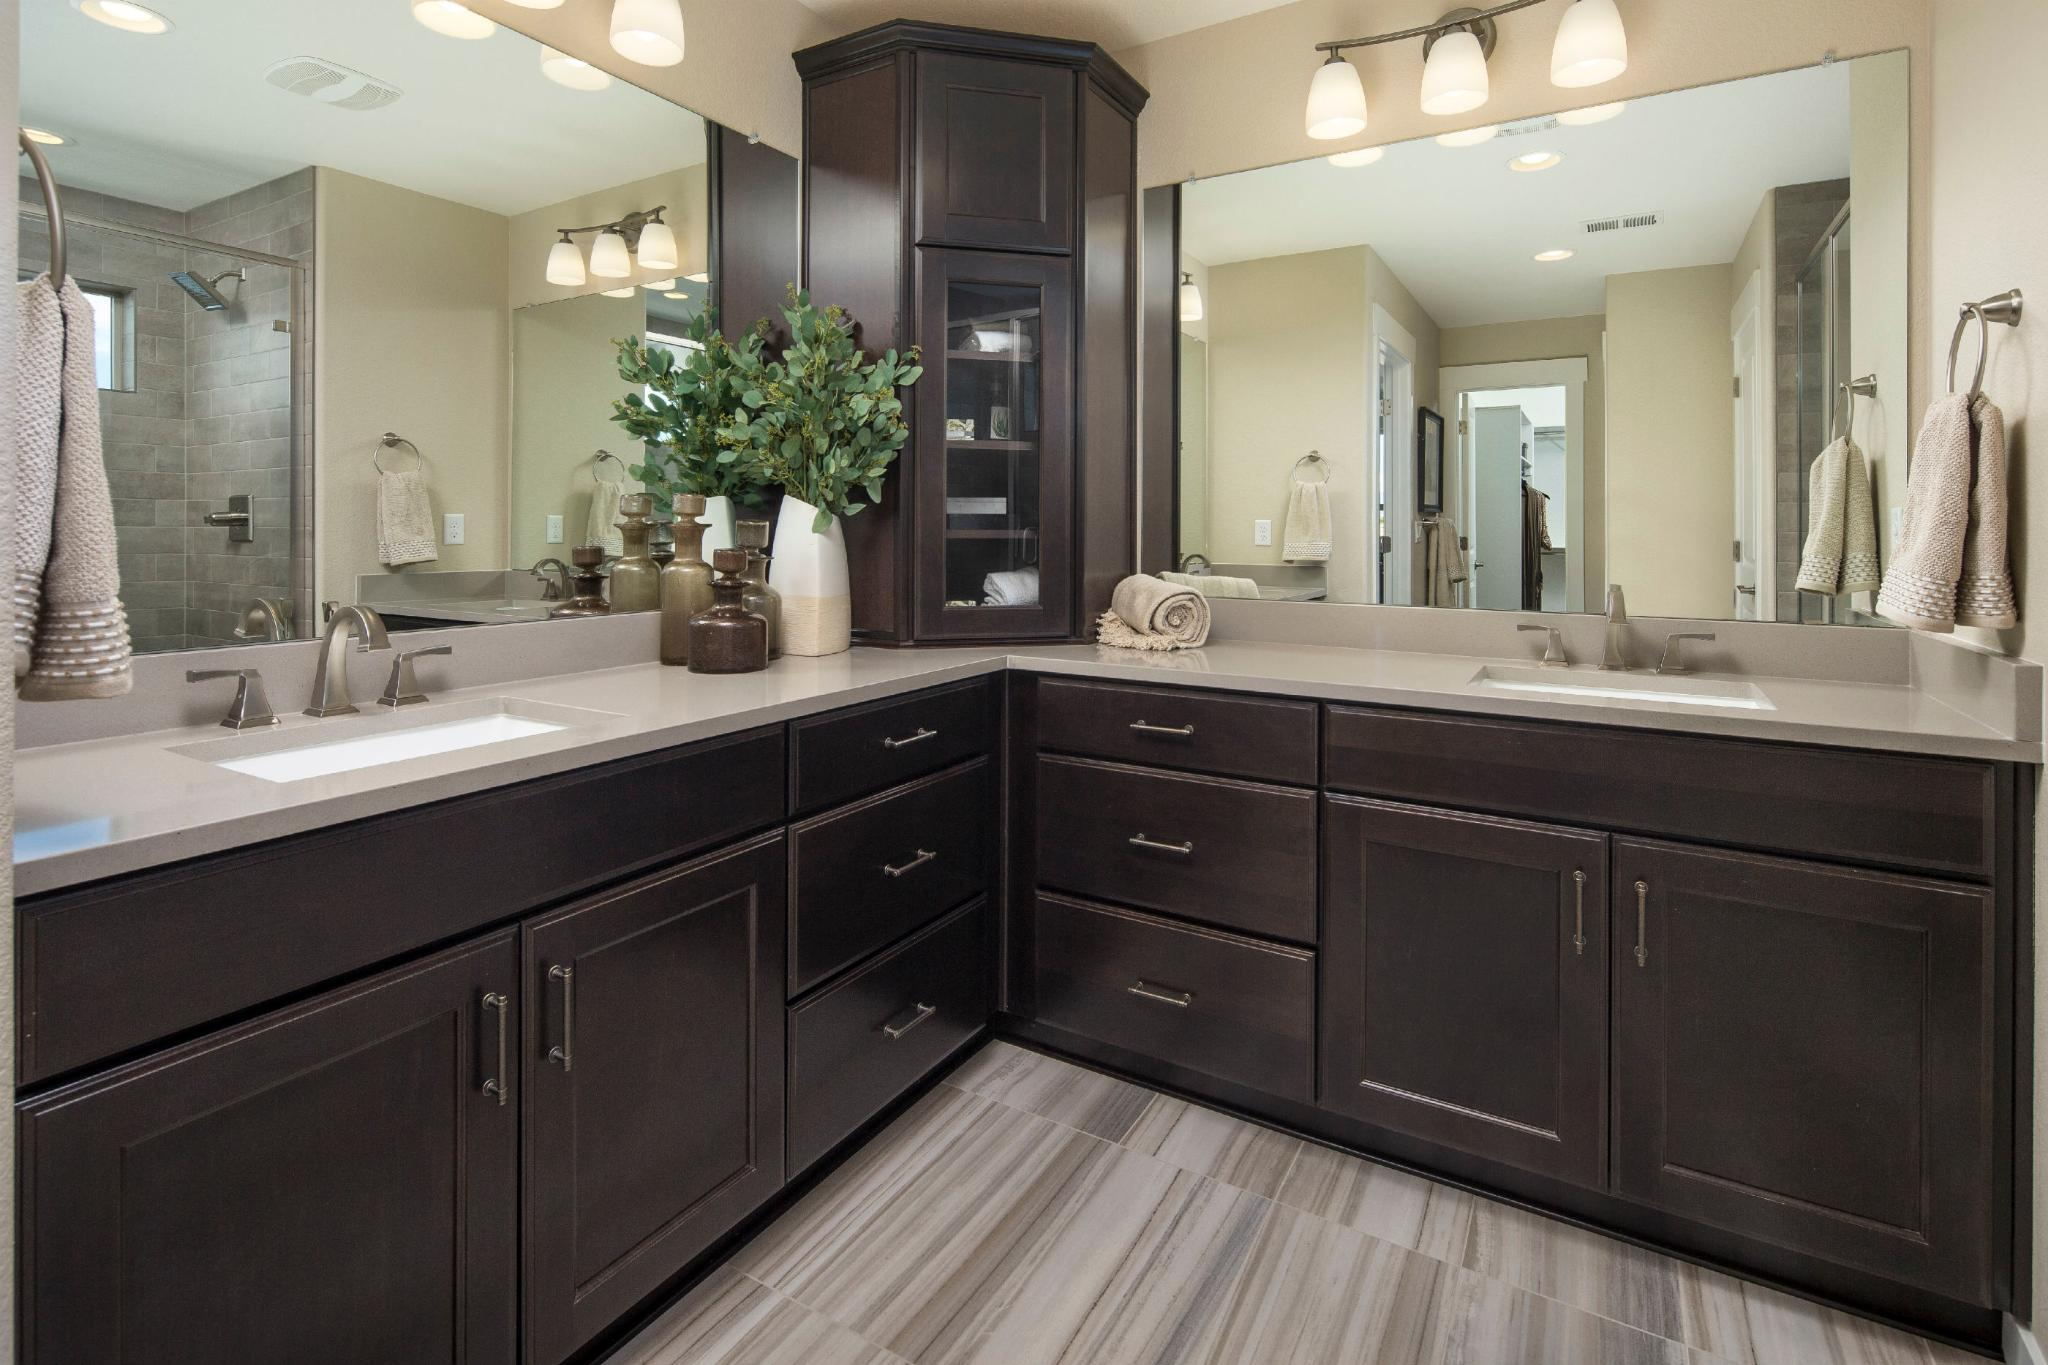 Bathroom featured in the Plan C407 By American Legend Homes in Greeley, CO